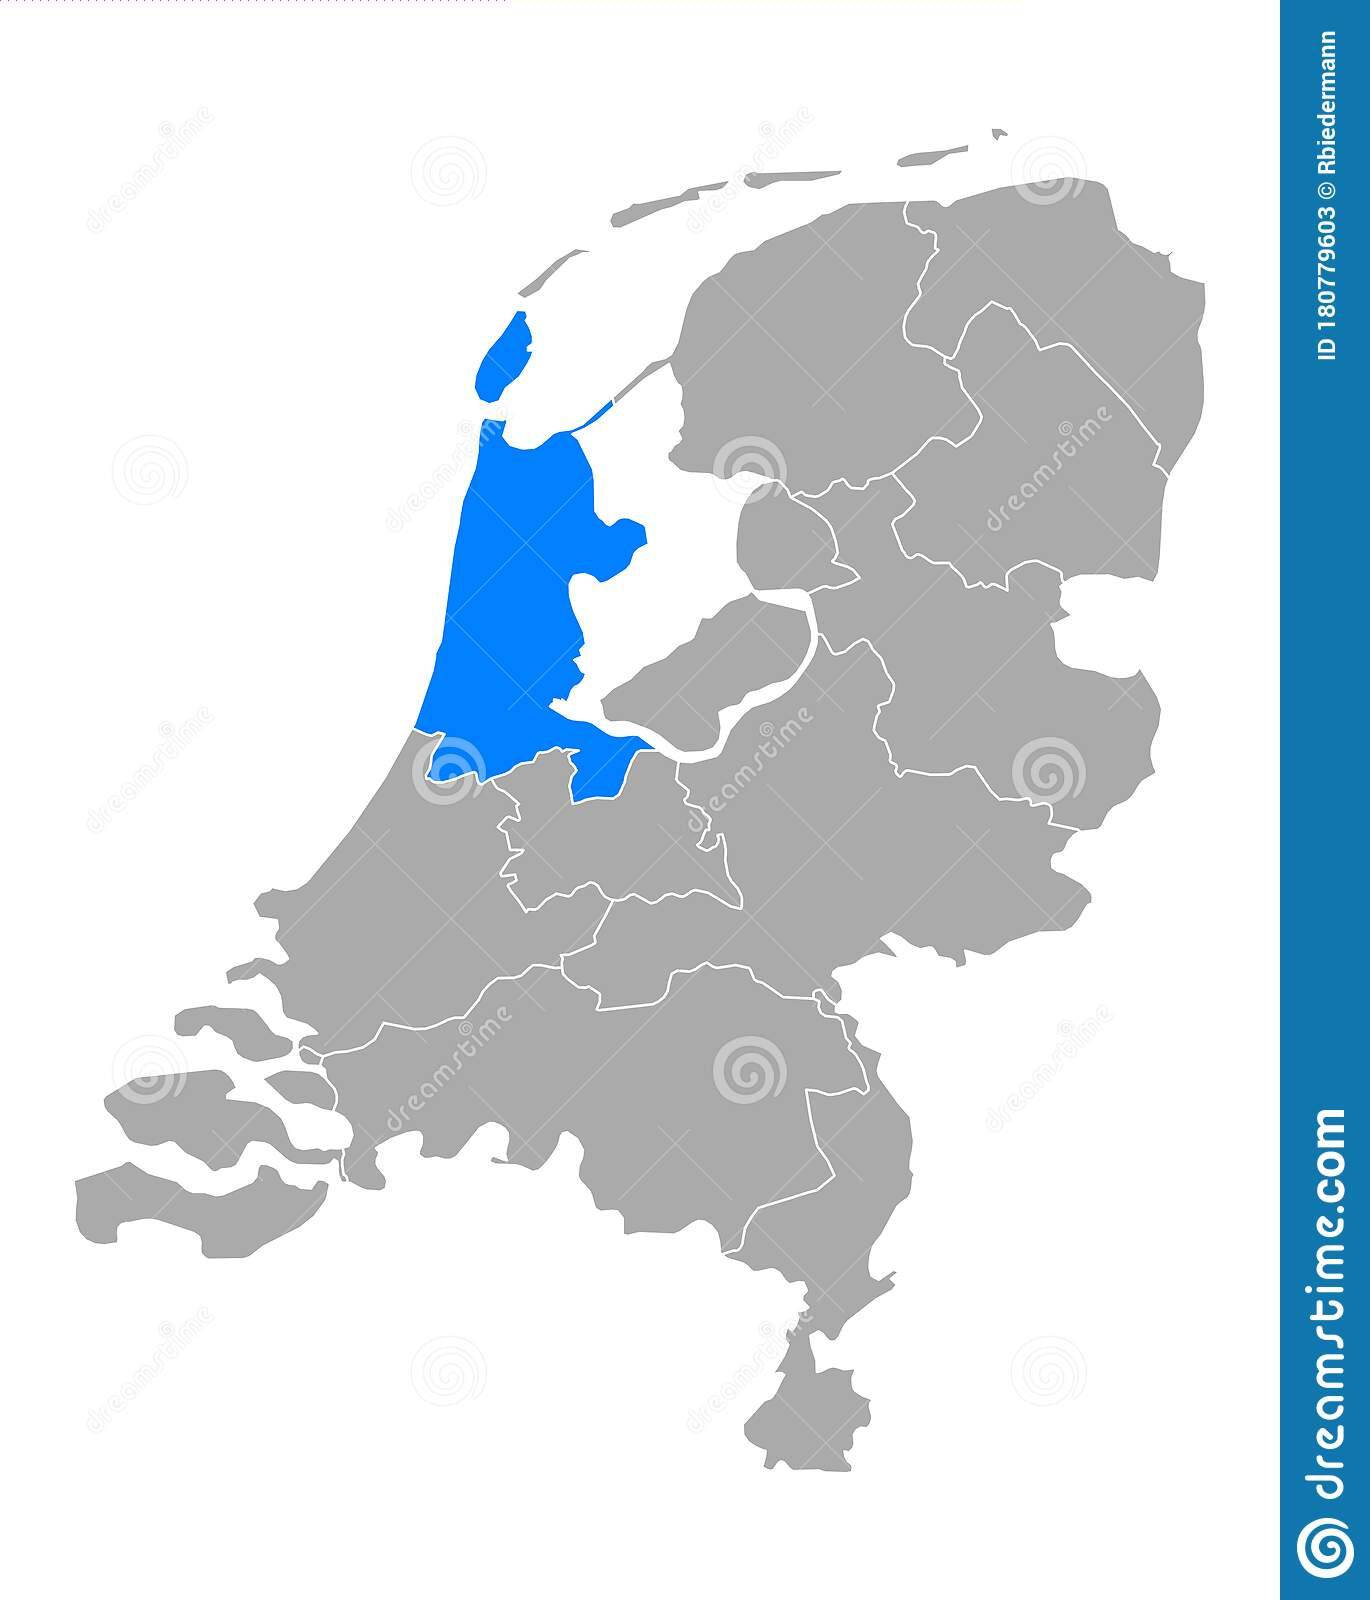 Picture of: Map Of North Holland In Netherlands Stock Vector Illustration Of Grey Vector 180779603